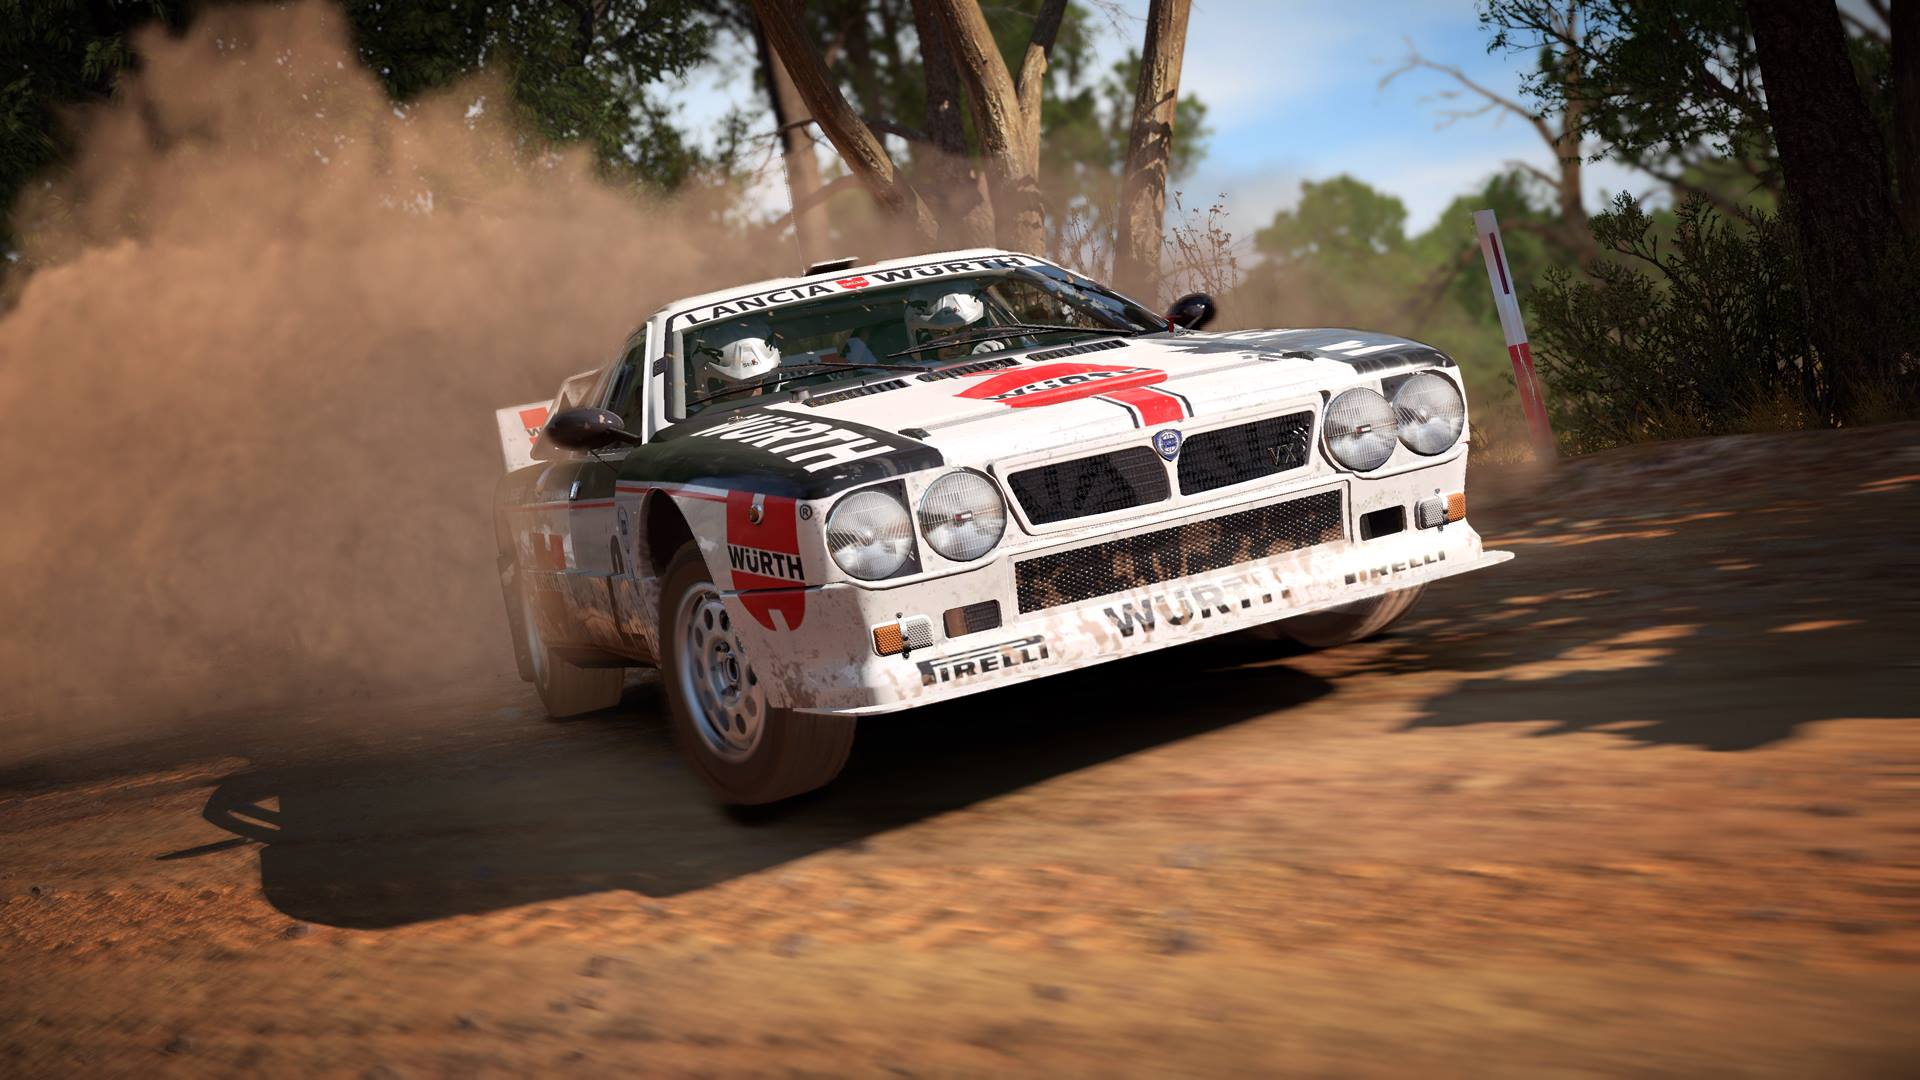 Clubs functionality introduced to Dirt 4